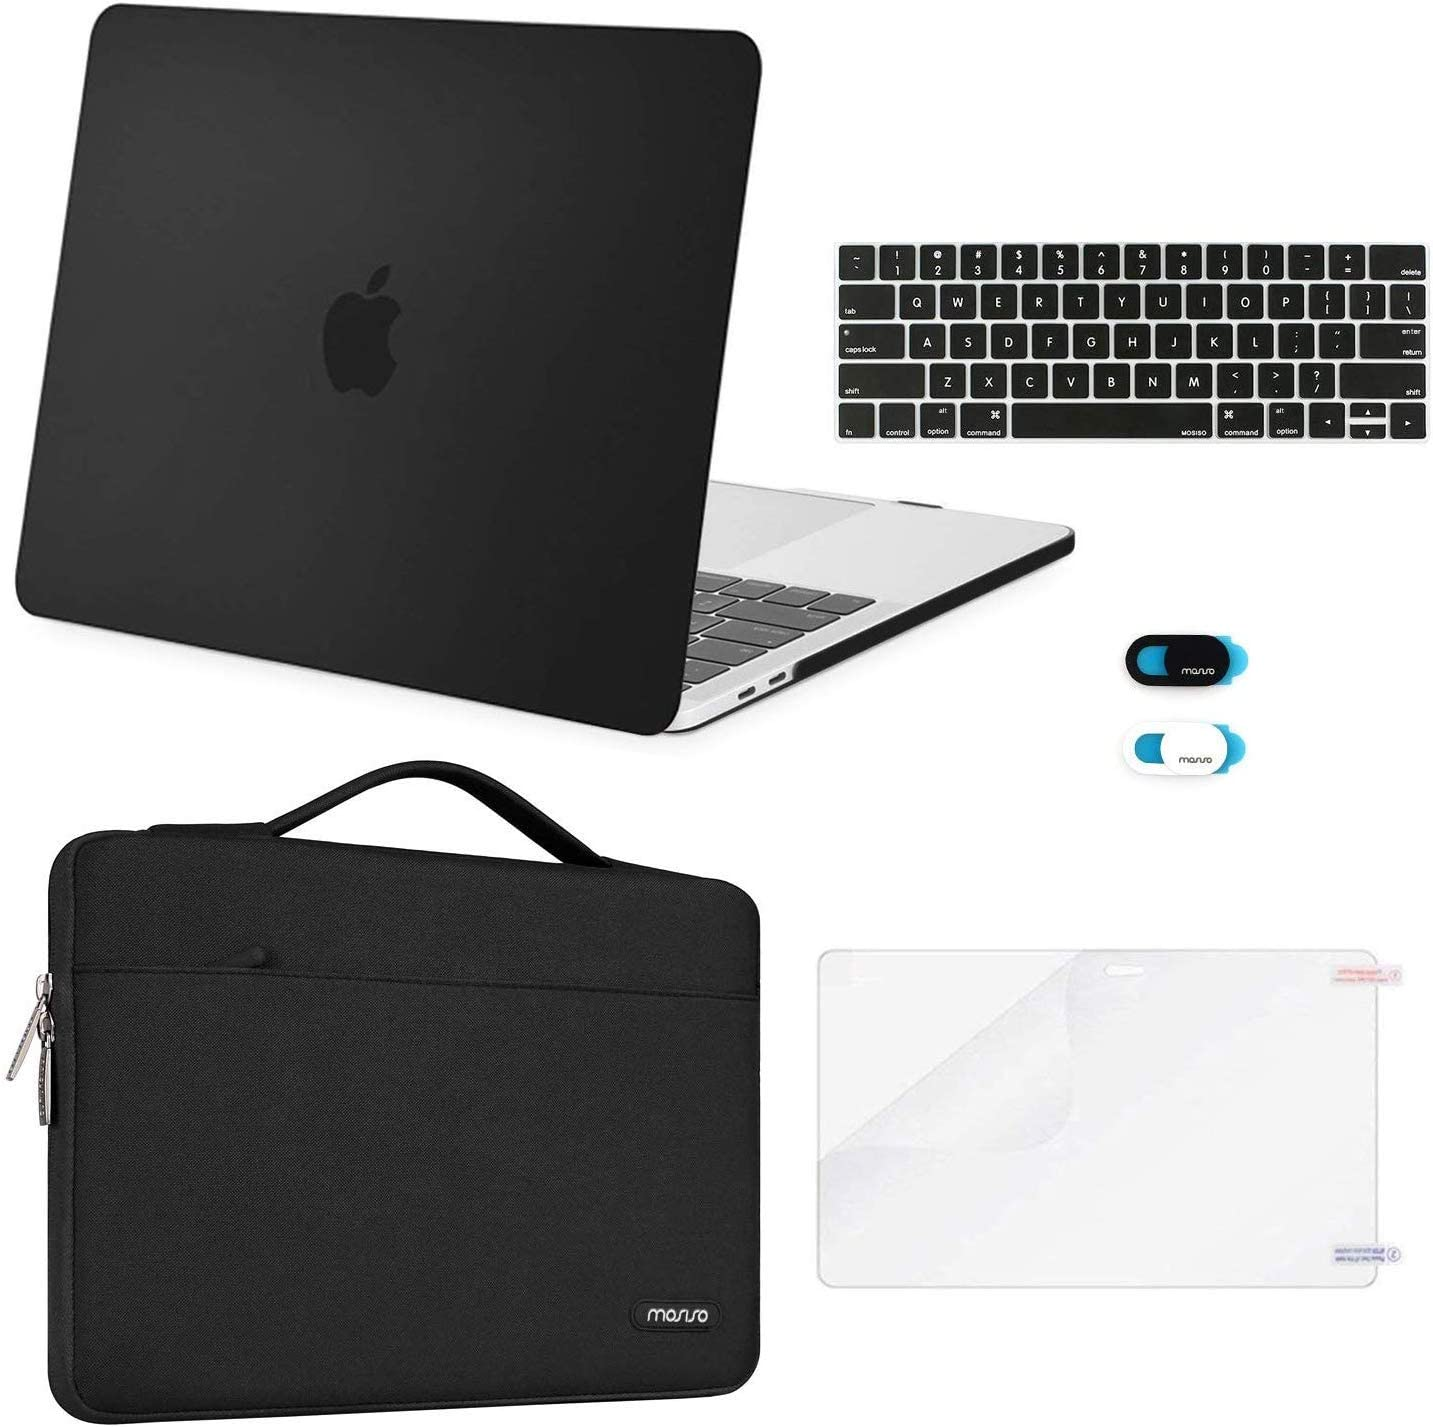 MOSISO MacBook Pro 15 inch Case 2019 2018 2017 2016 Release A1990 A1707, Plastic Hard Shell Case&Sleeve Bag&Keyboard Cover&Webcam Cover&Screen Protector Compatible with MacBook Pro 15 inch, Black